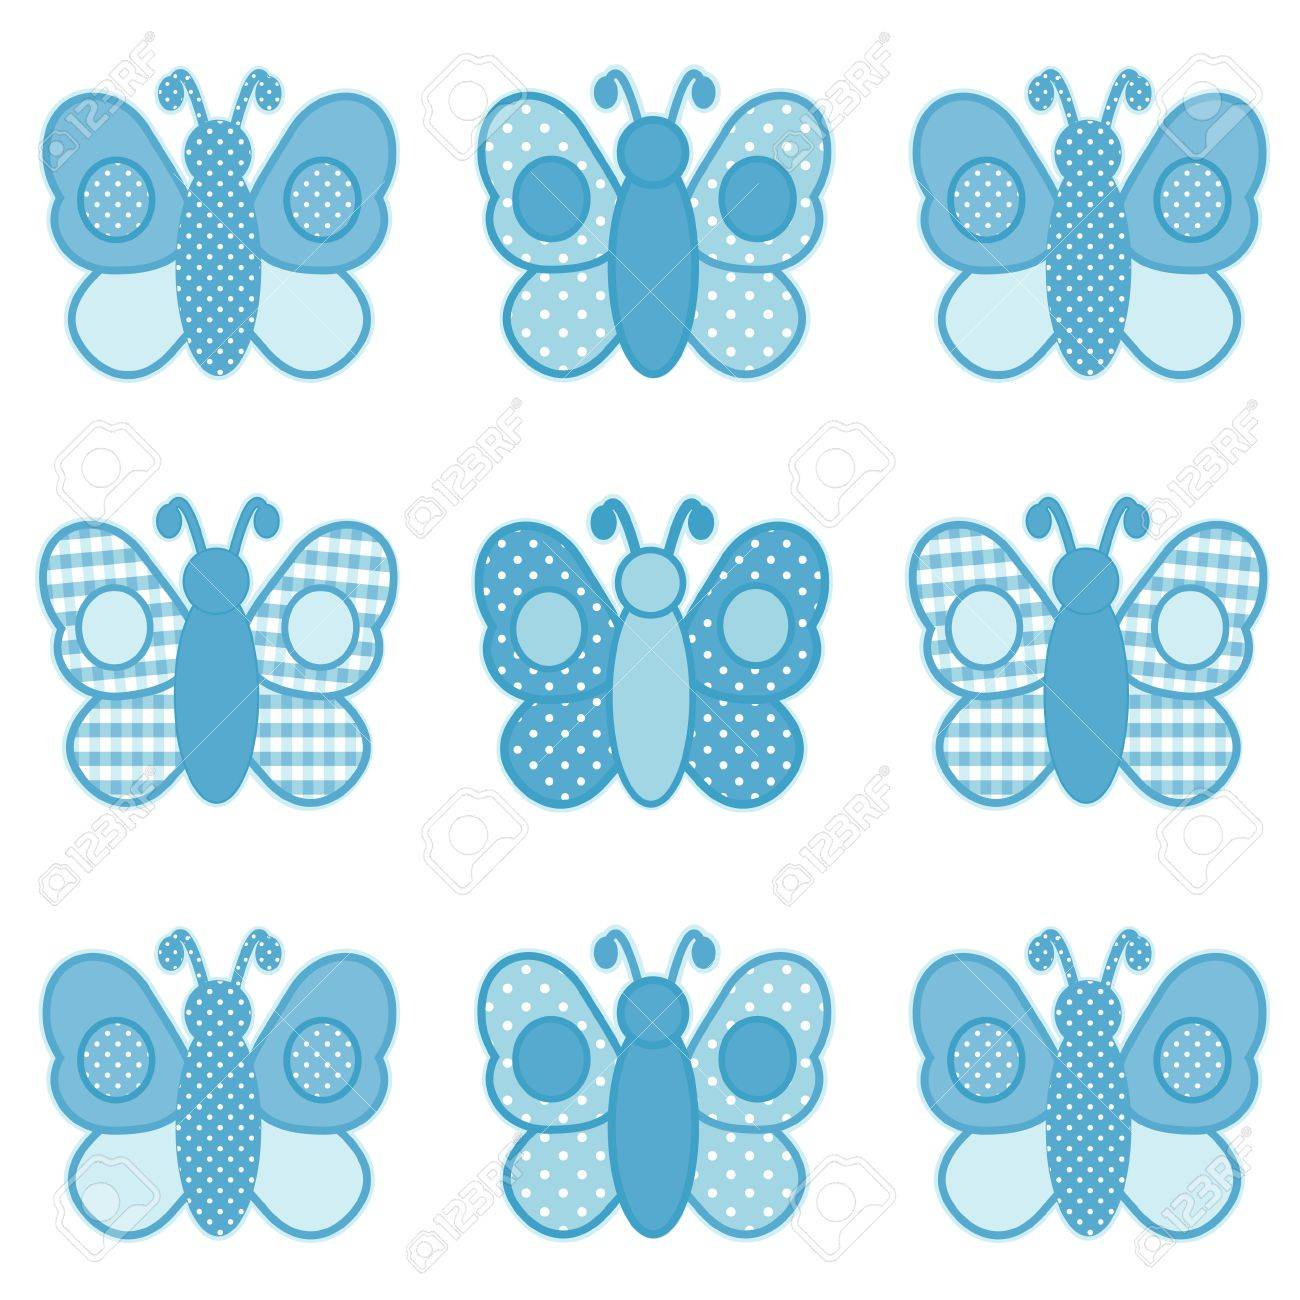 Baby Butterflies, Pastel Aqua Gingham and Polka Dots, for scrapbooks, albums, baby books. Stock Vector - 12136845